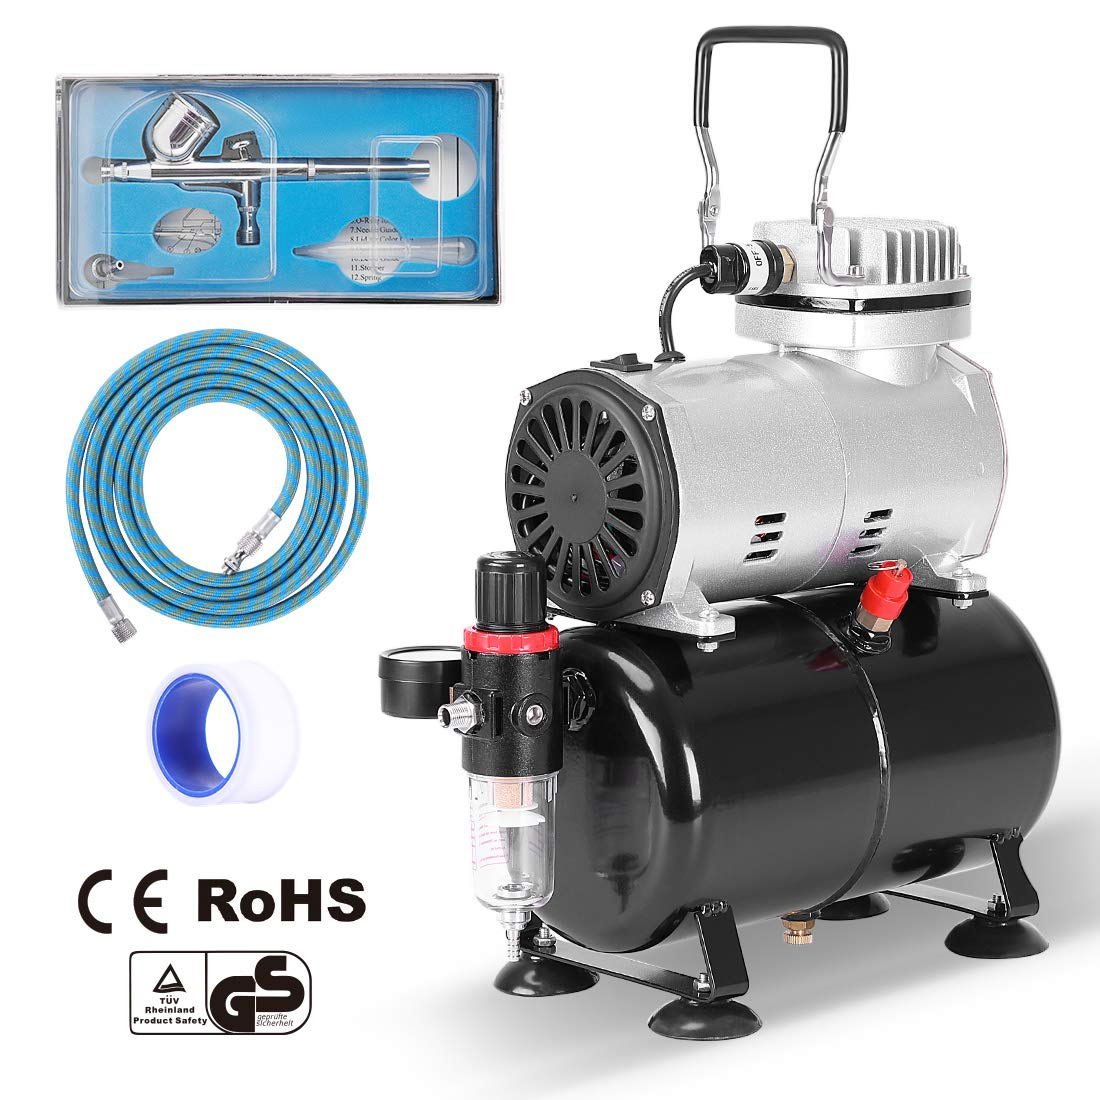 VIVOHOME 110-120V Professional Airbrushing Paint System with 1//5 HP Air Compressor and 3 Airbrush Kits ETL Certified